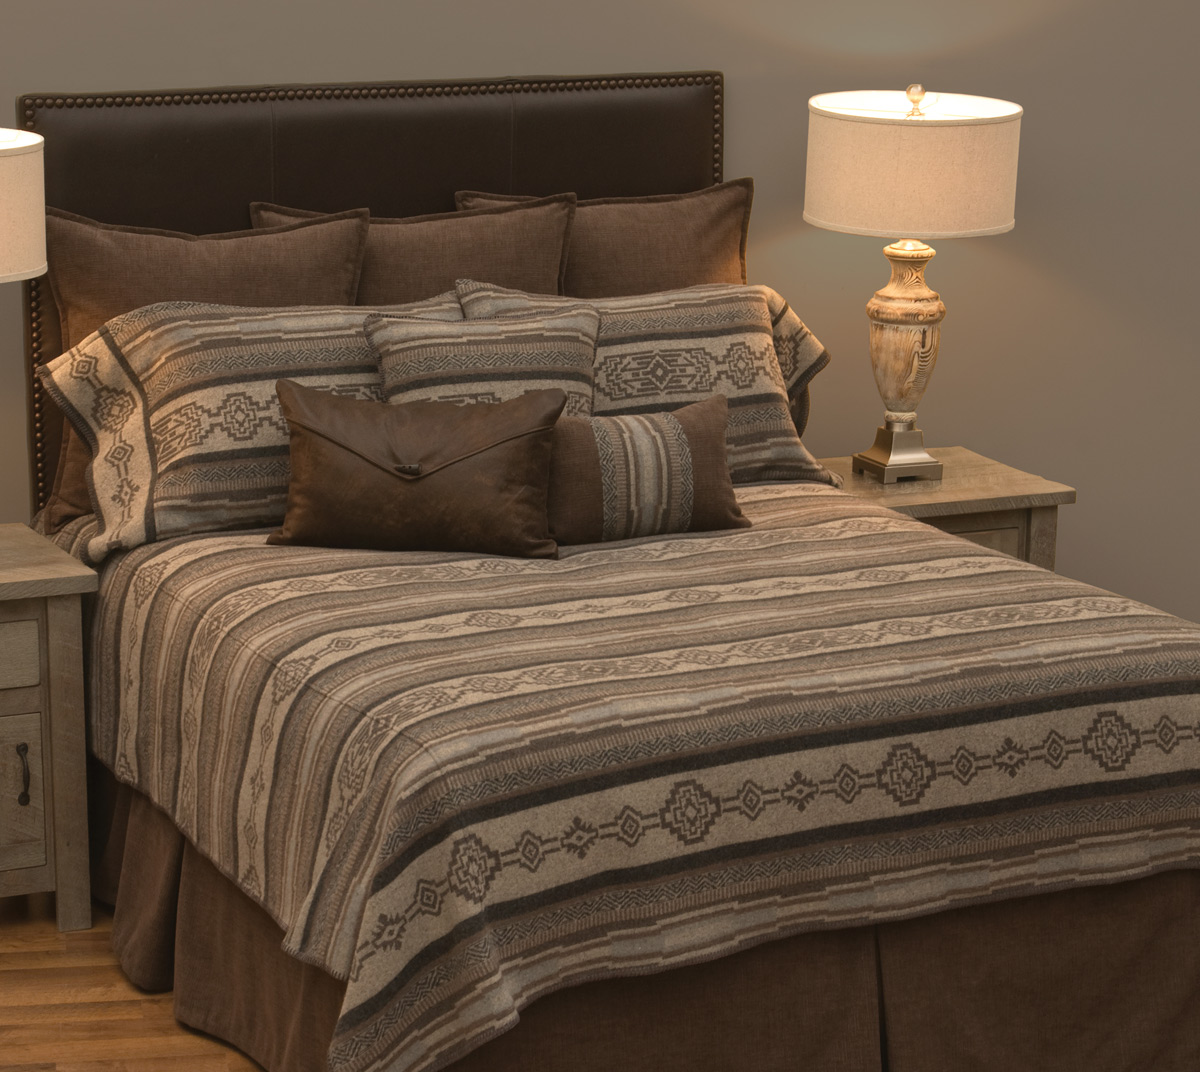 Lodge Lux Value Bed Set - King